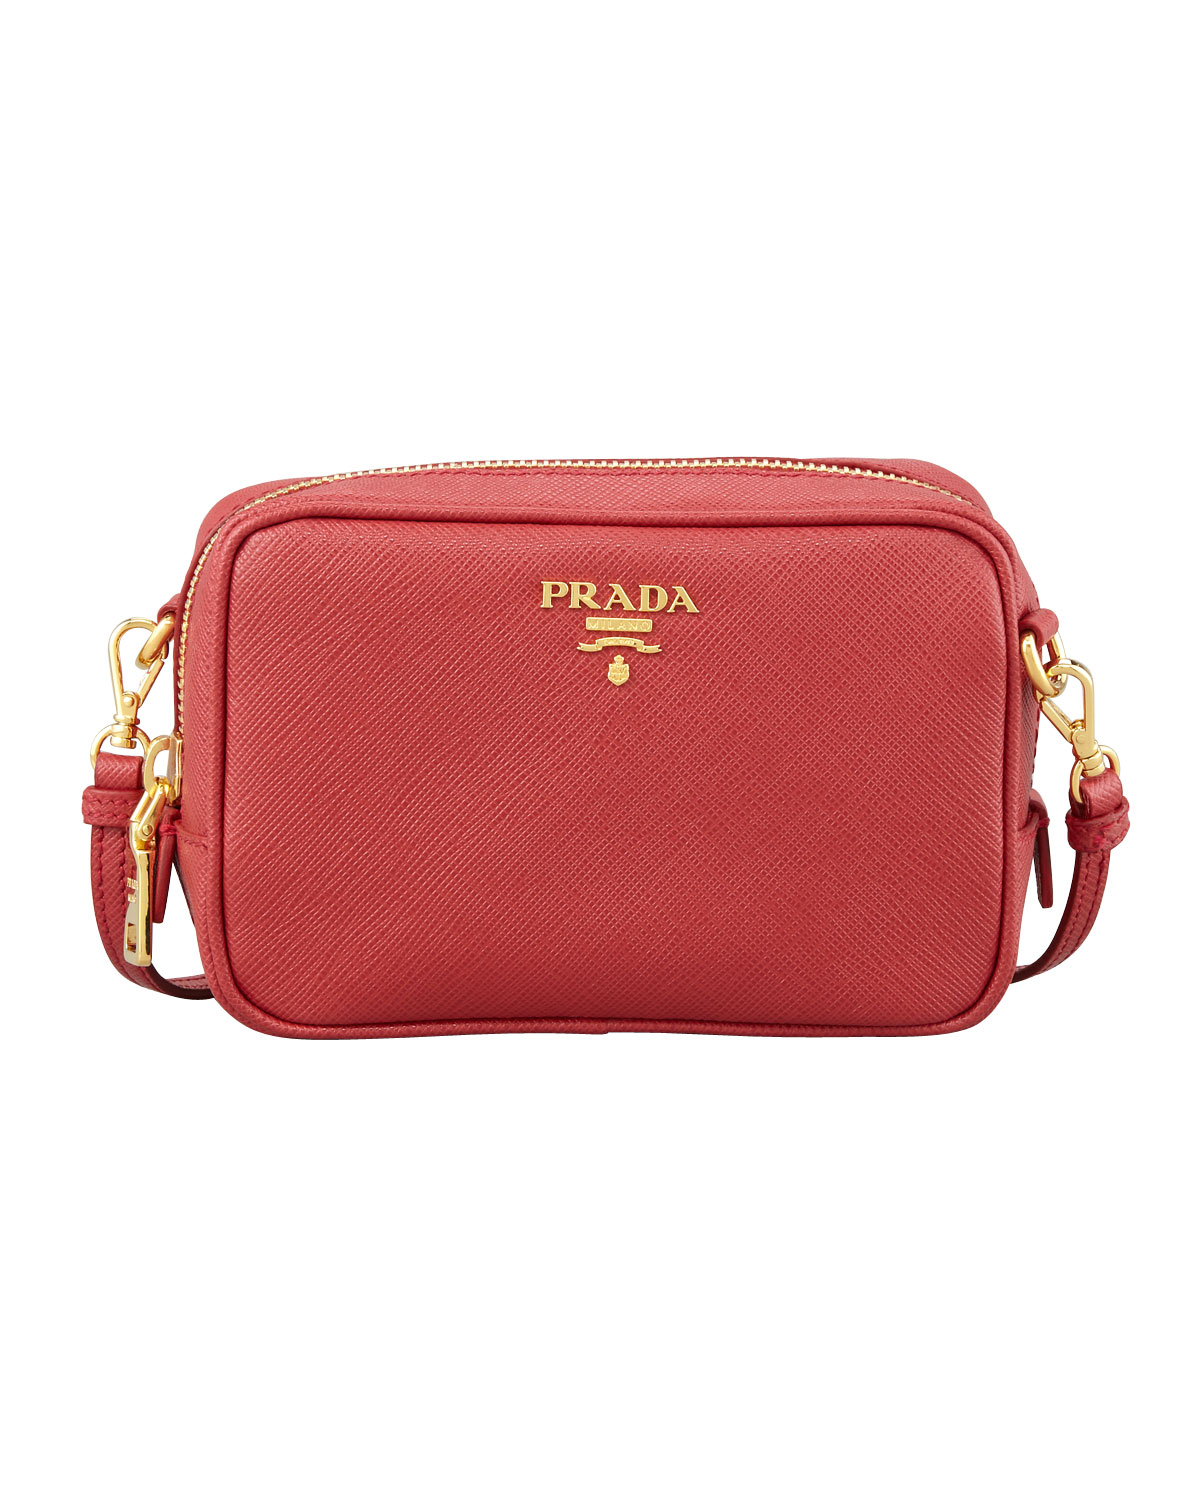 Prada Saffiano Mini Zip Crossbody Bag, Red (Fuoco)